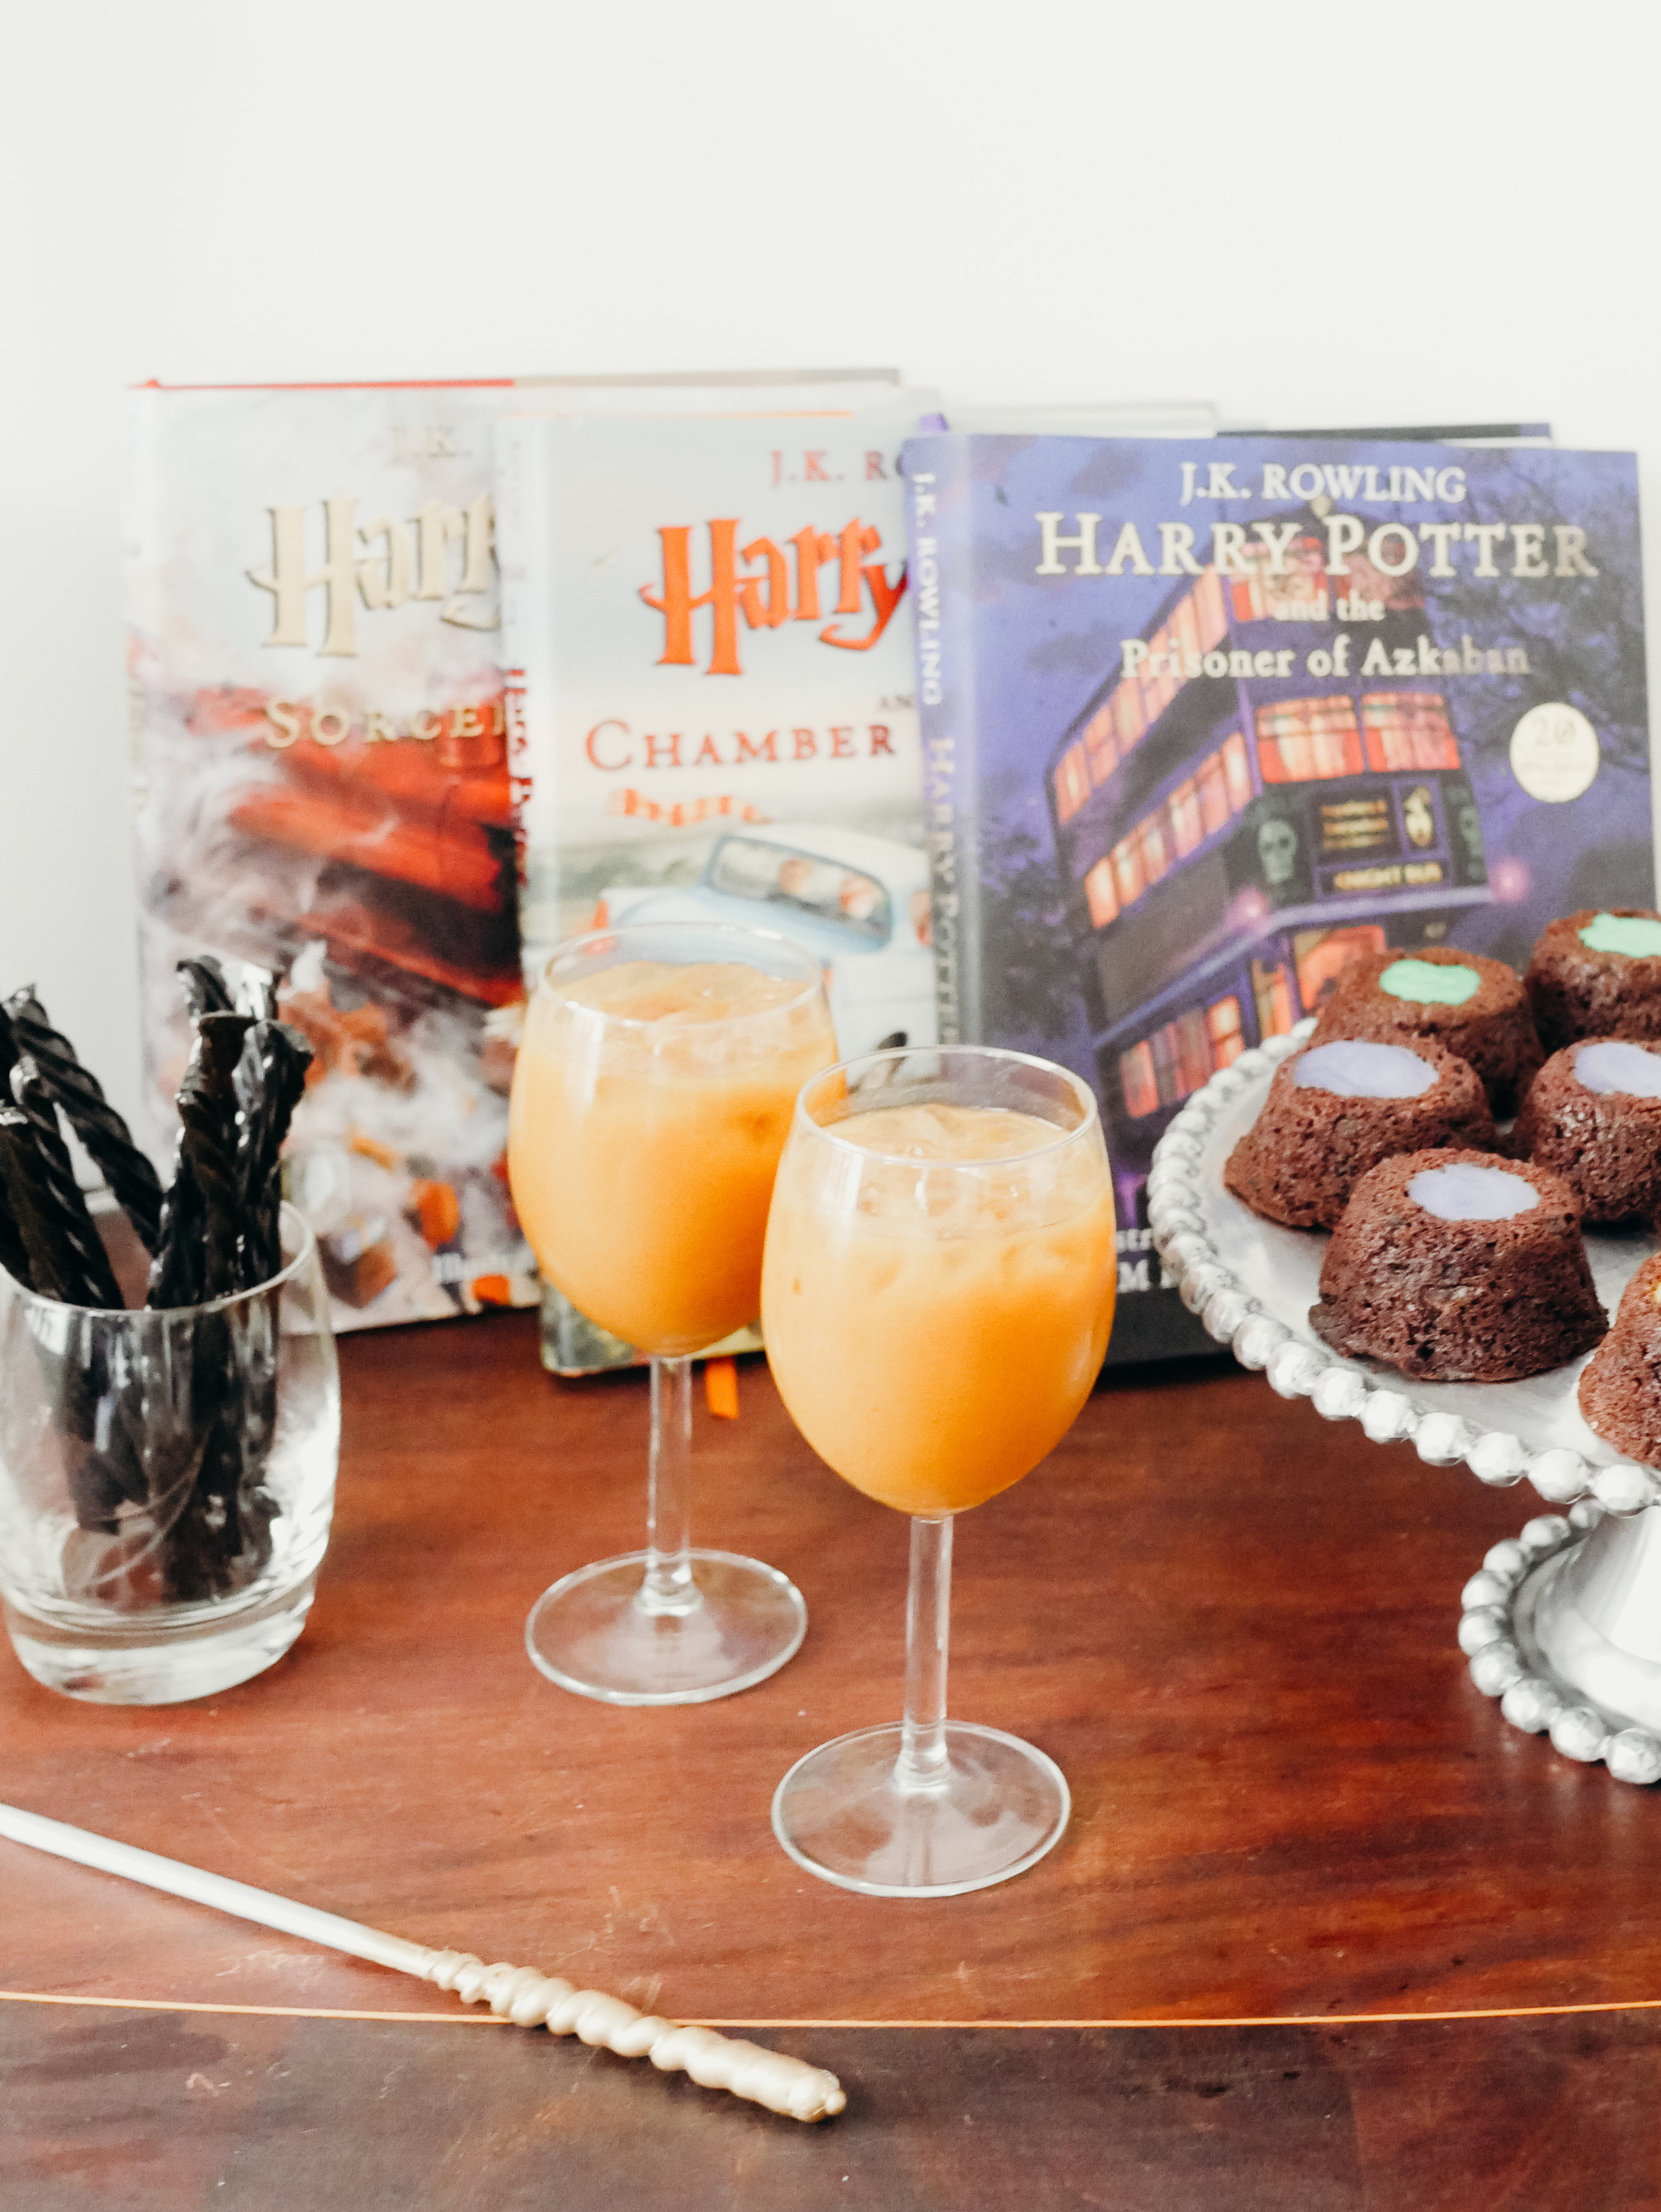 Harry Potter Snacks - Pumpkin Juice, Cauldron Cakes, Licorice Wands